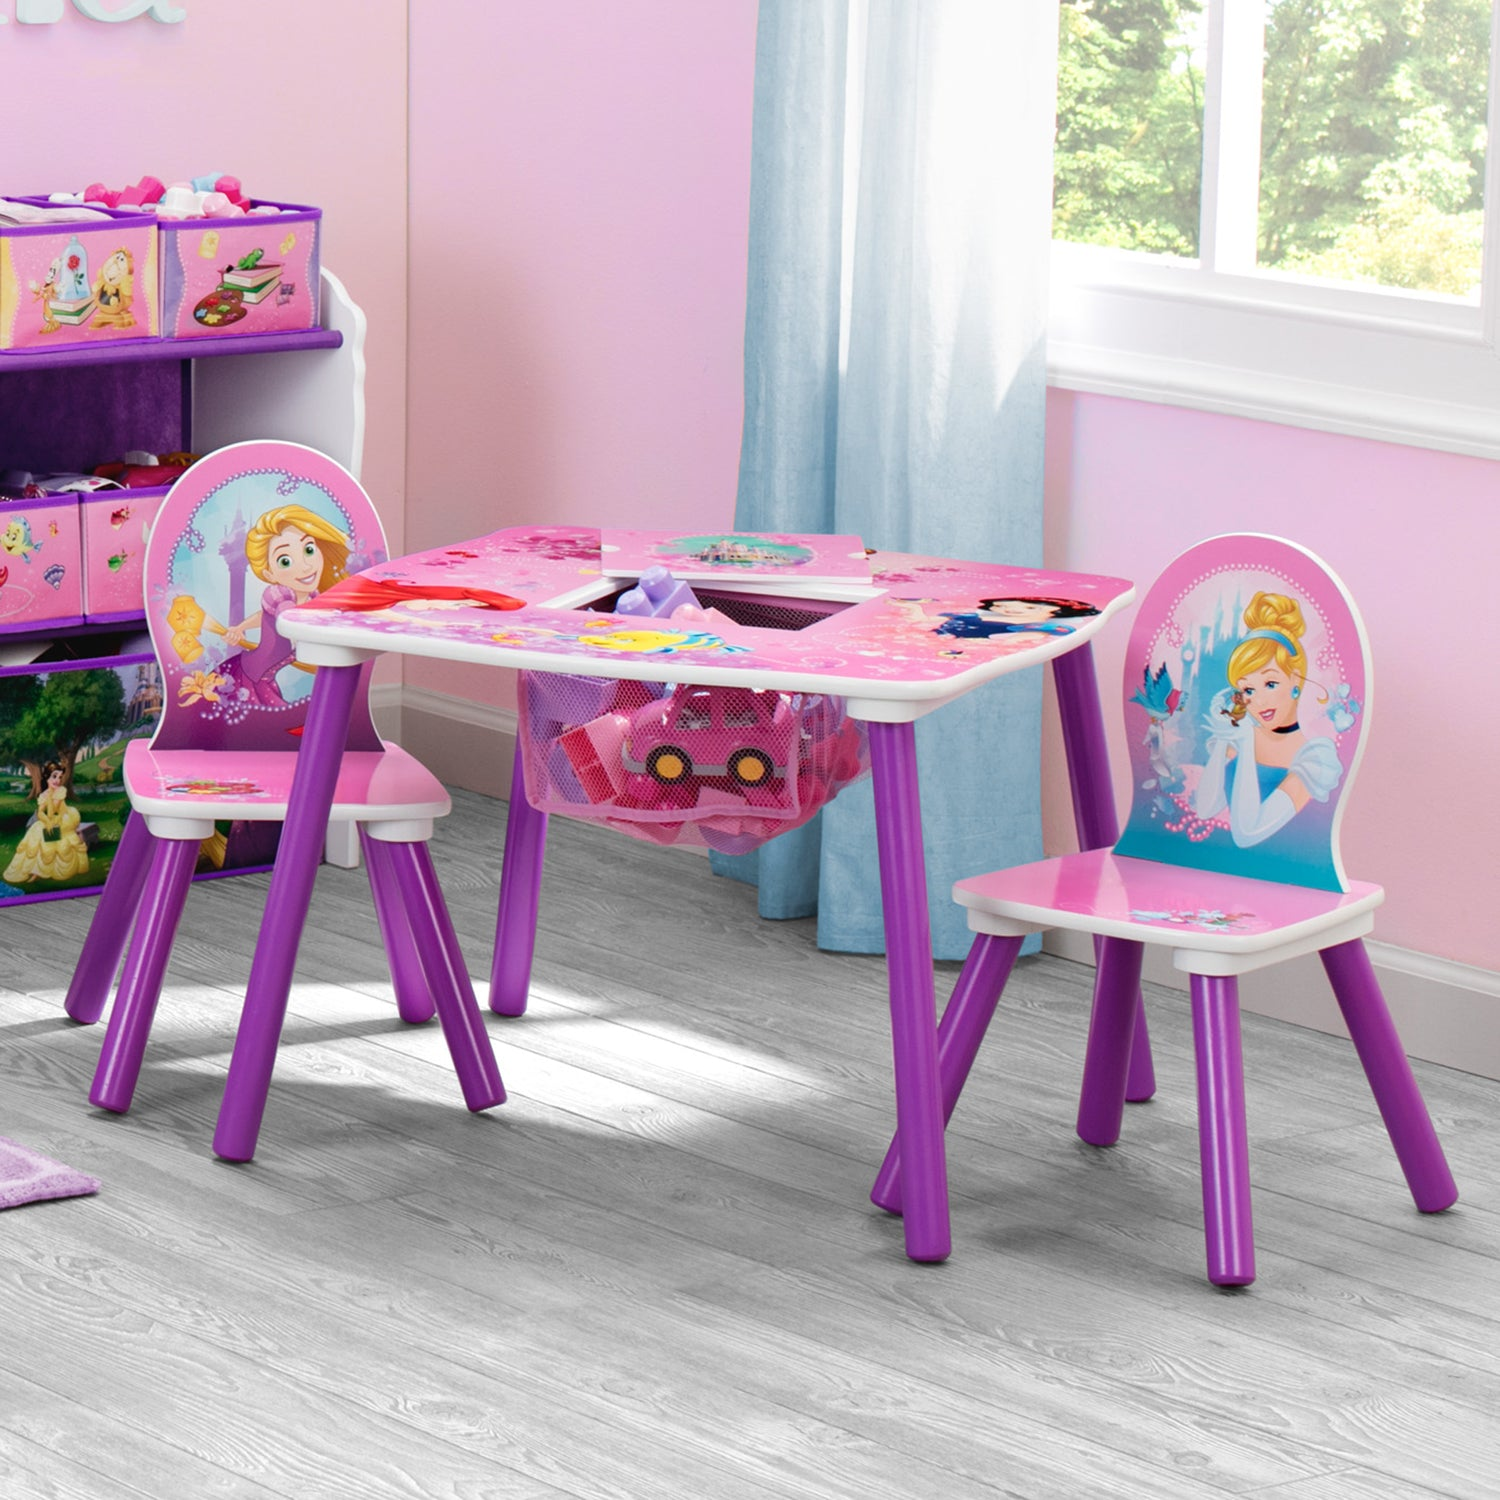 Princess Kids Table and Chair Set with Storage